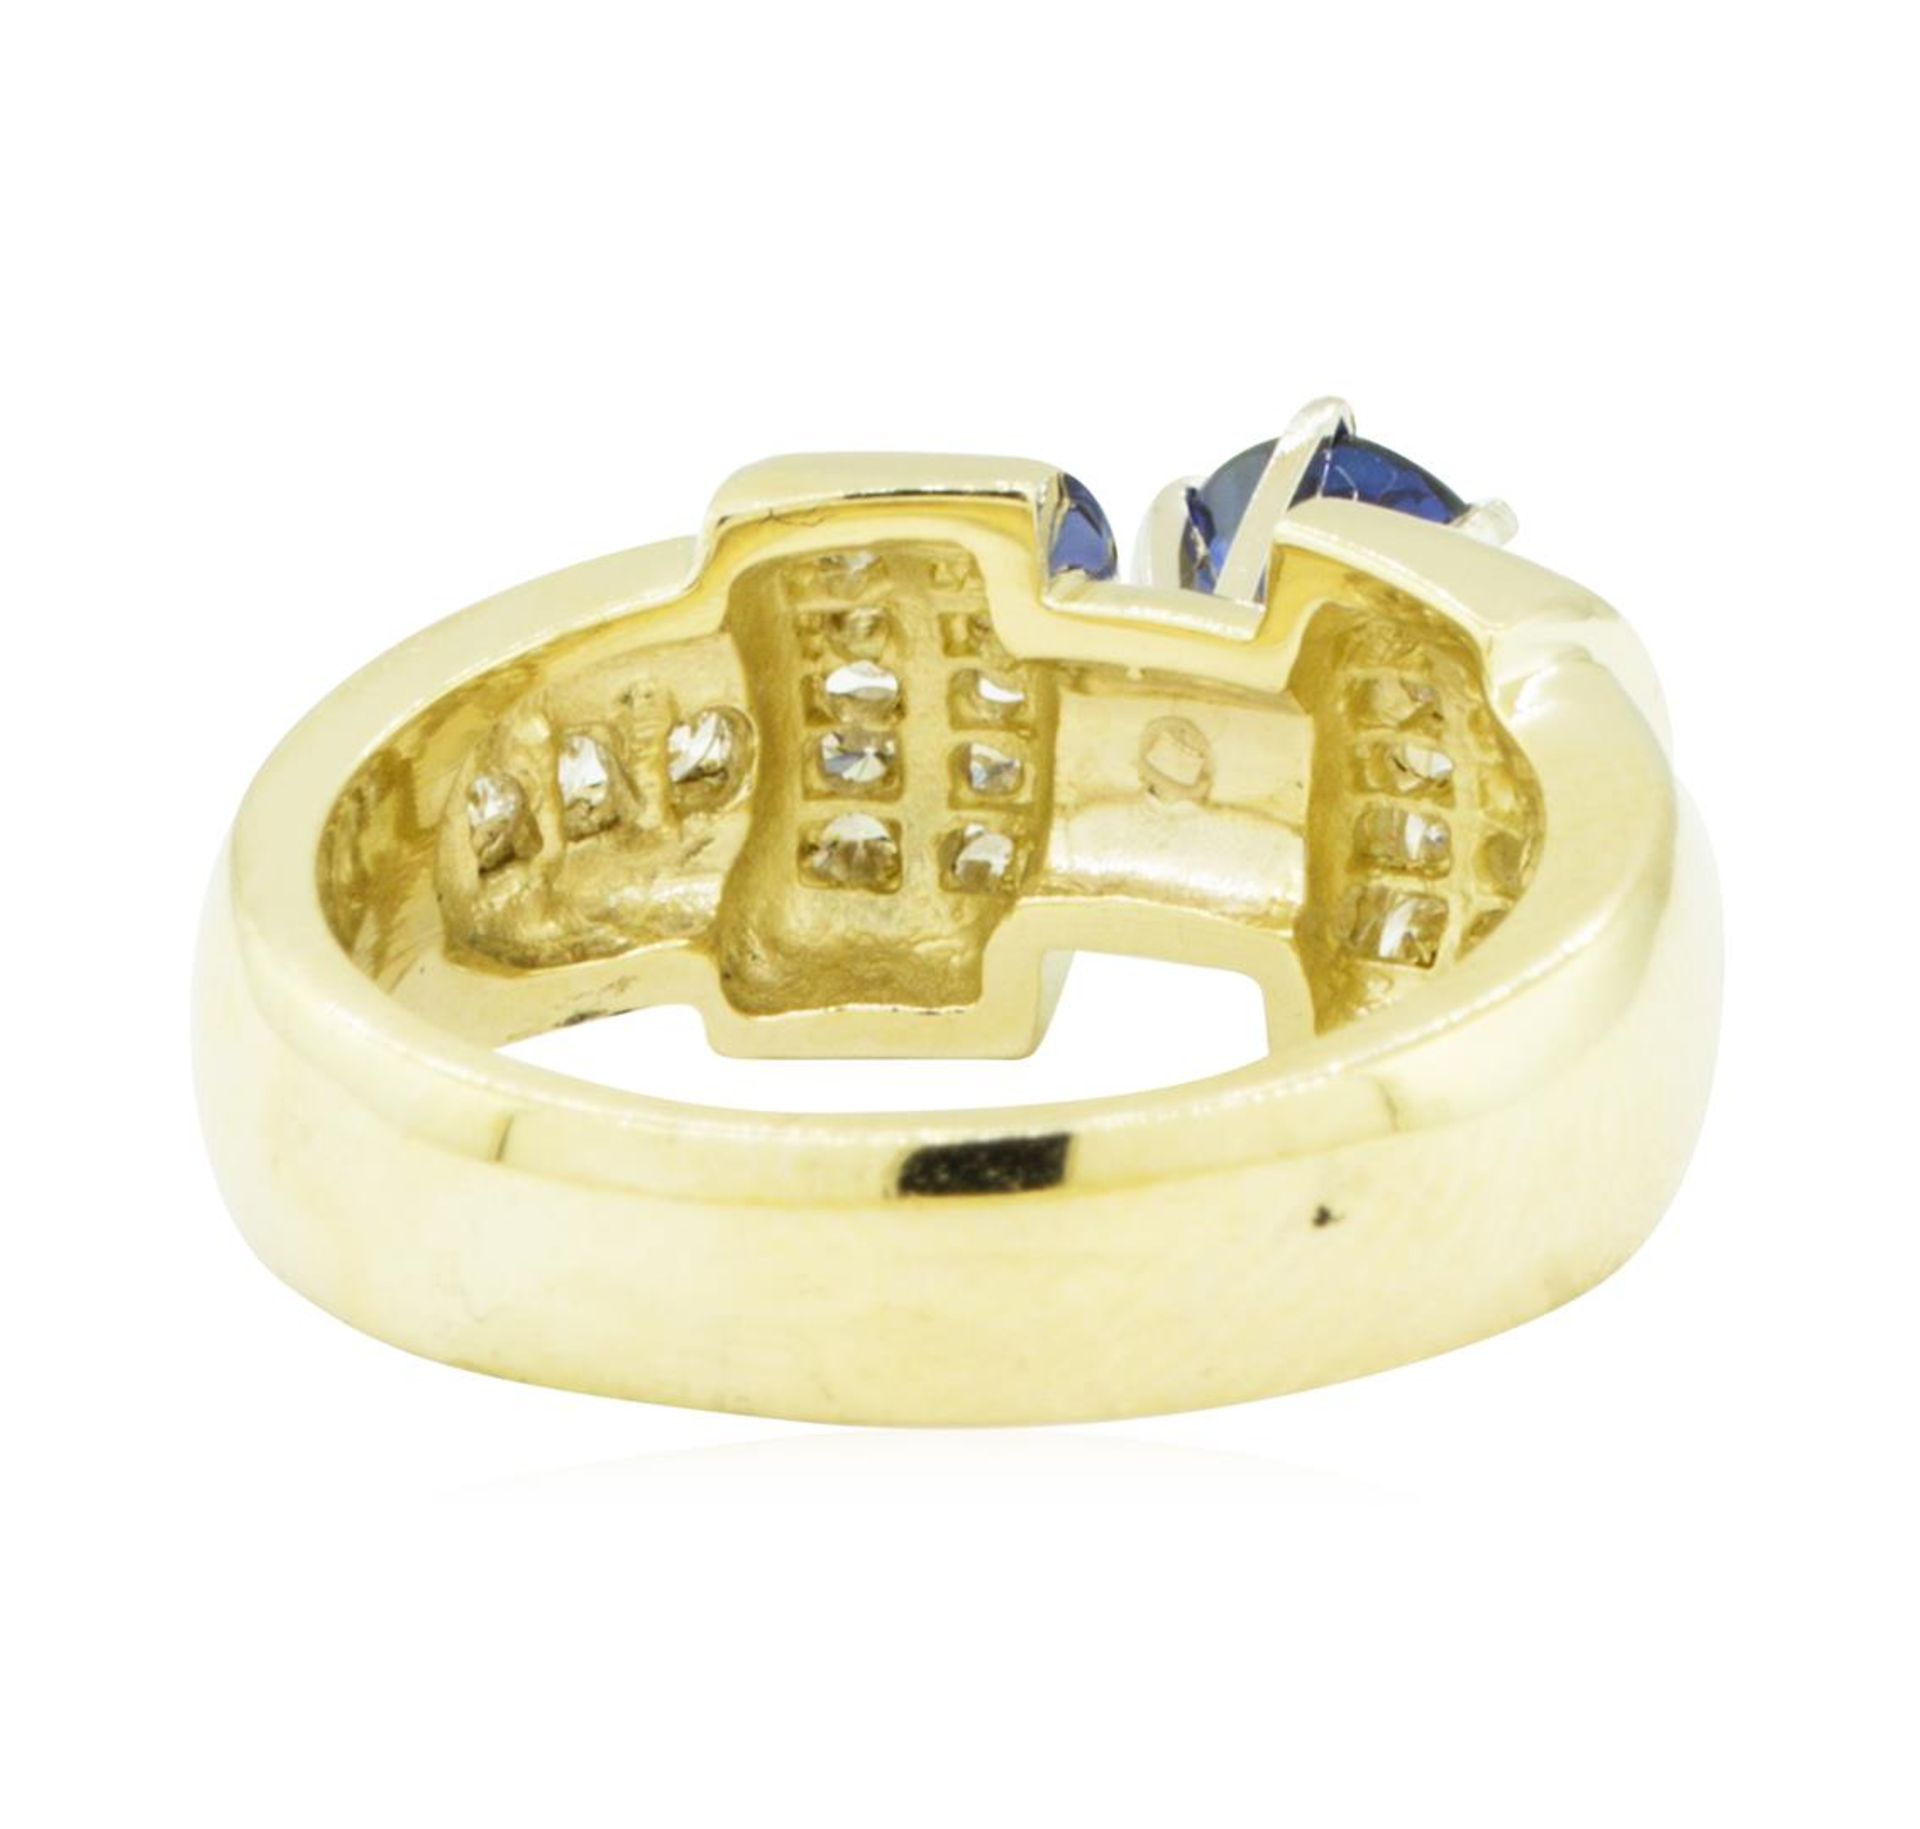 1.40 ctw Round Brilliant Blue Sapphire And Diamond Ring - 14KT Yellow Gold - Image 3 of 5